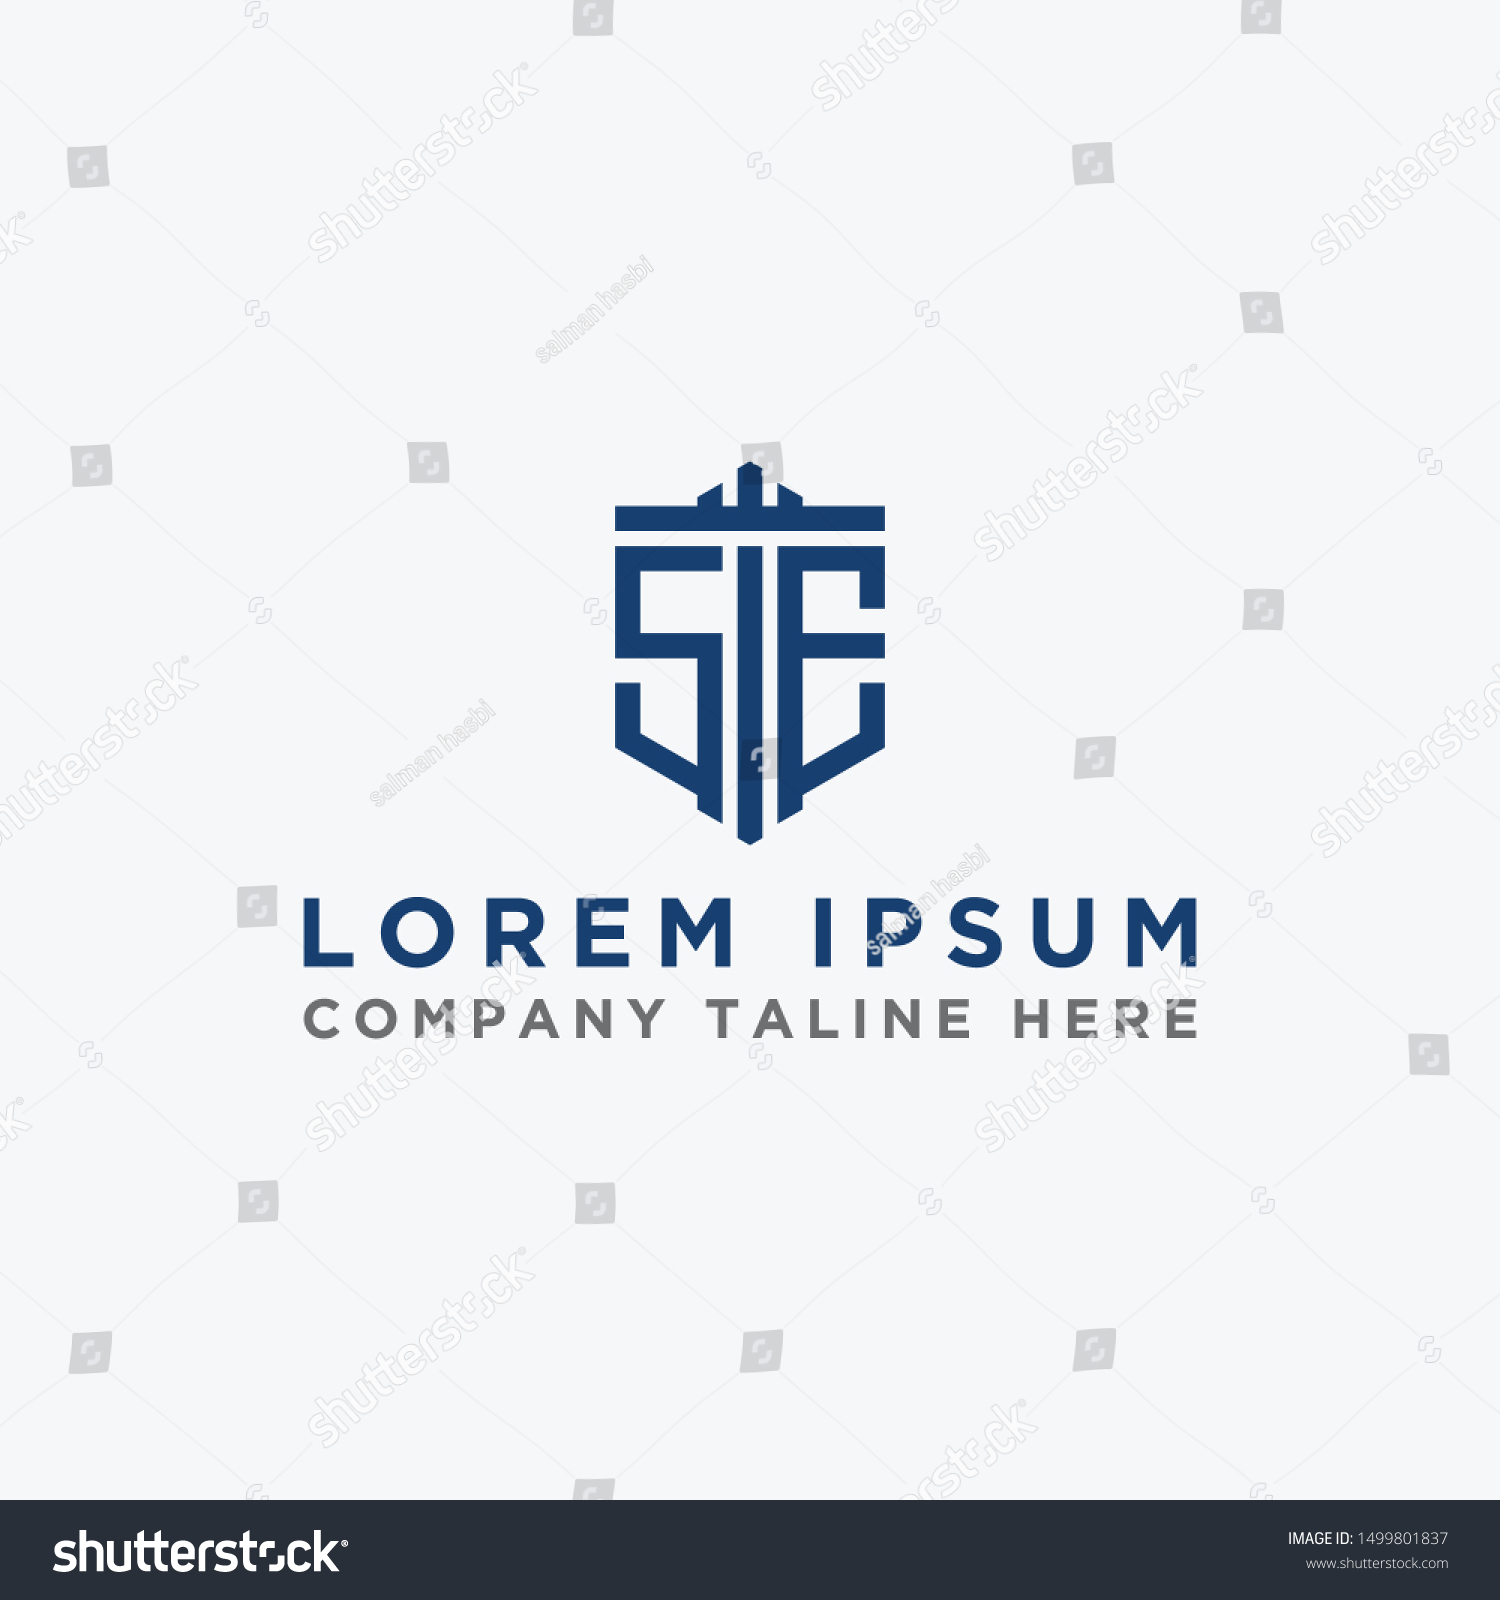 Inspiring Company Logo Designs Initial Letters Stock Vector Royalty Free 1499801837